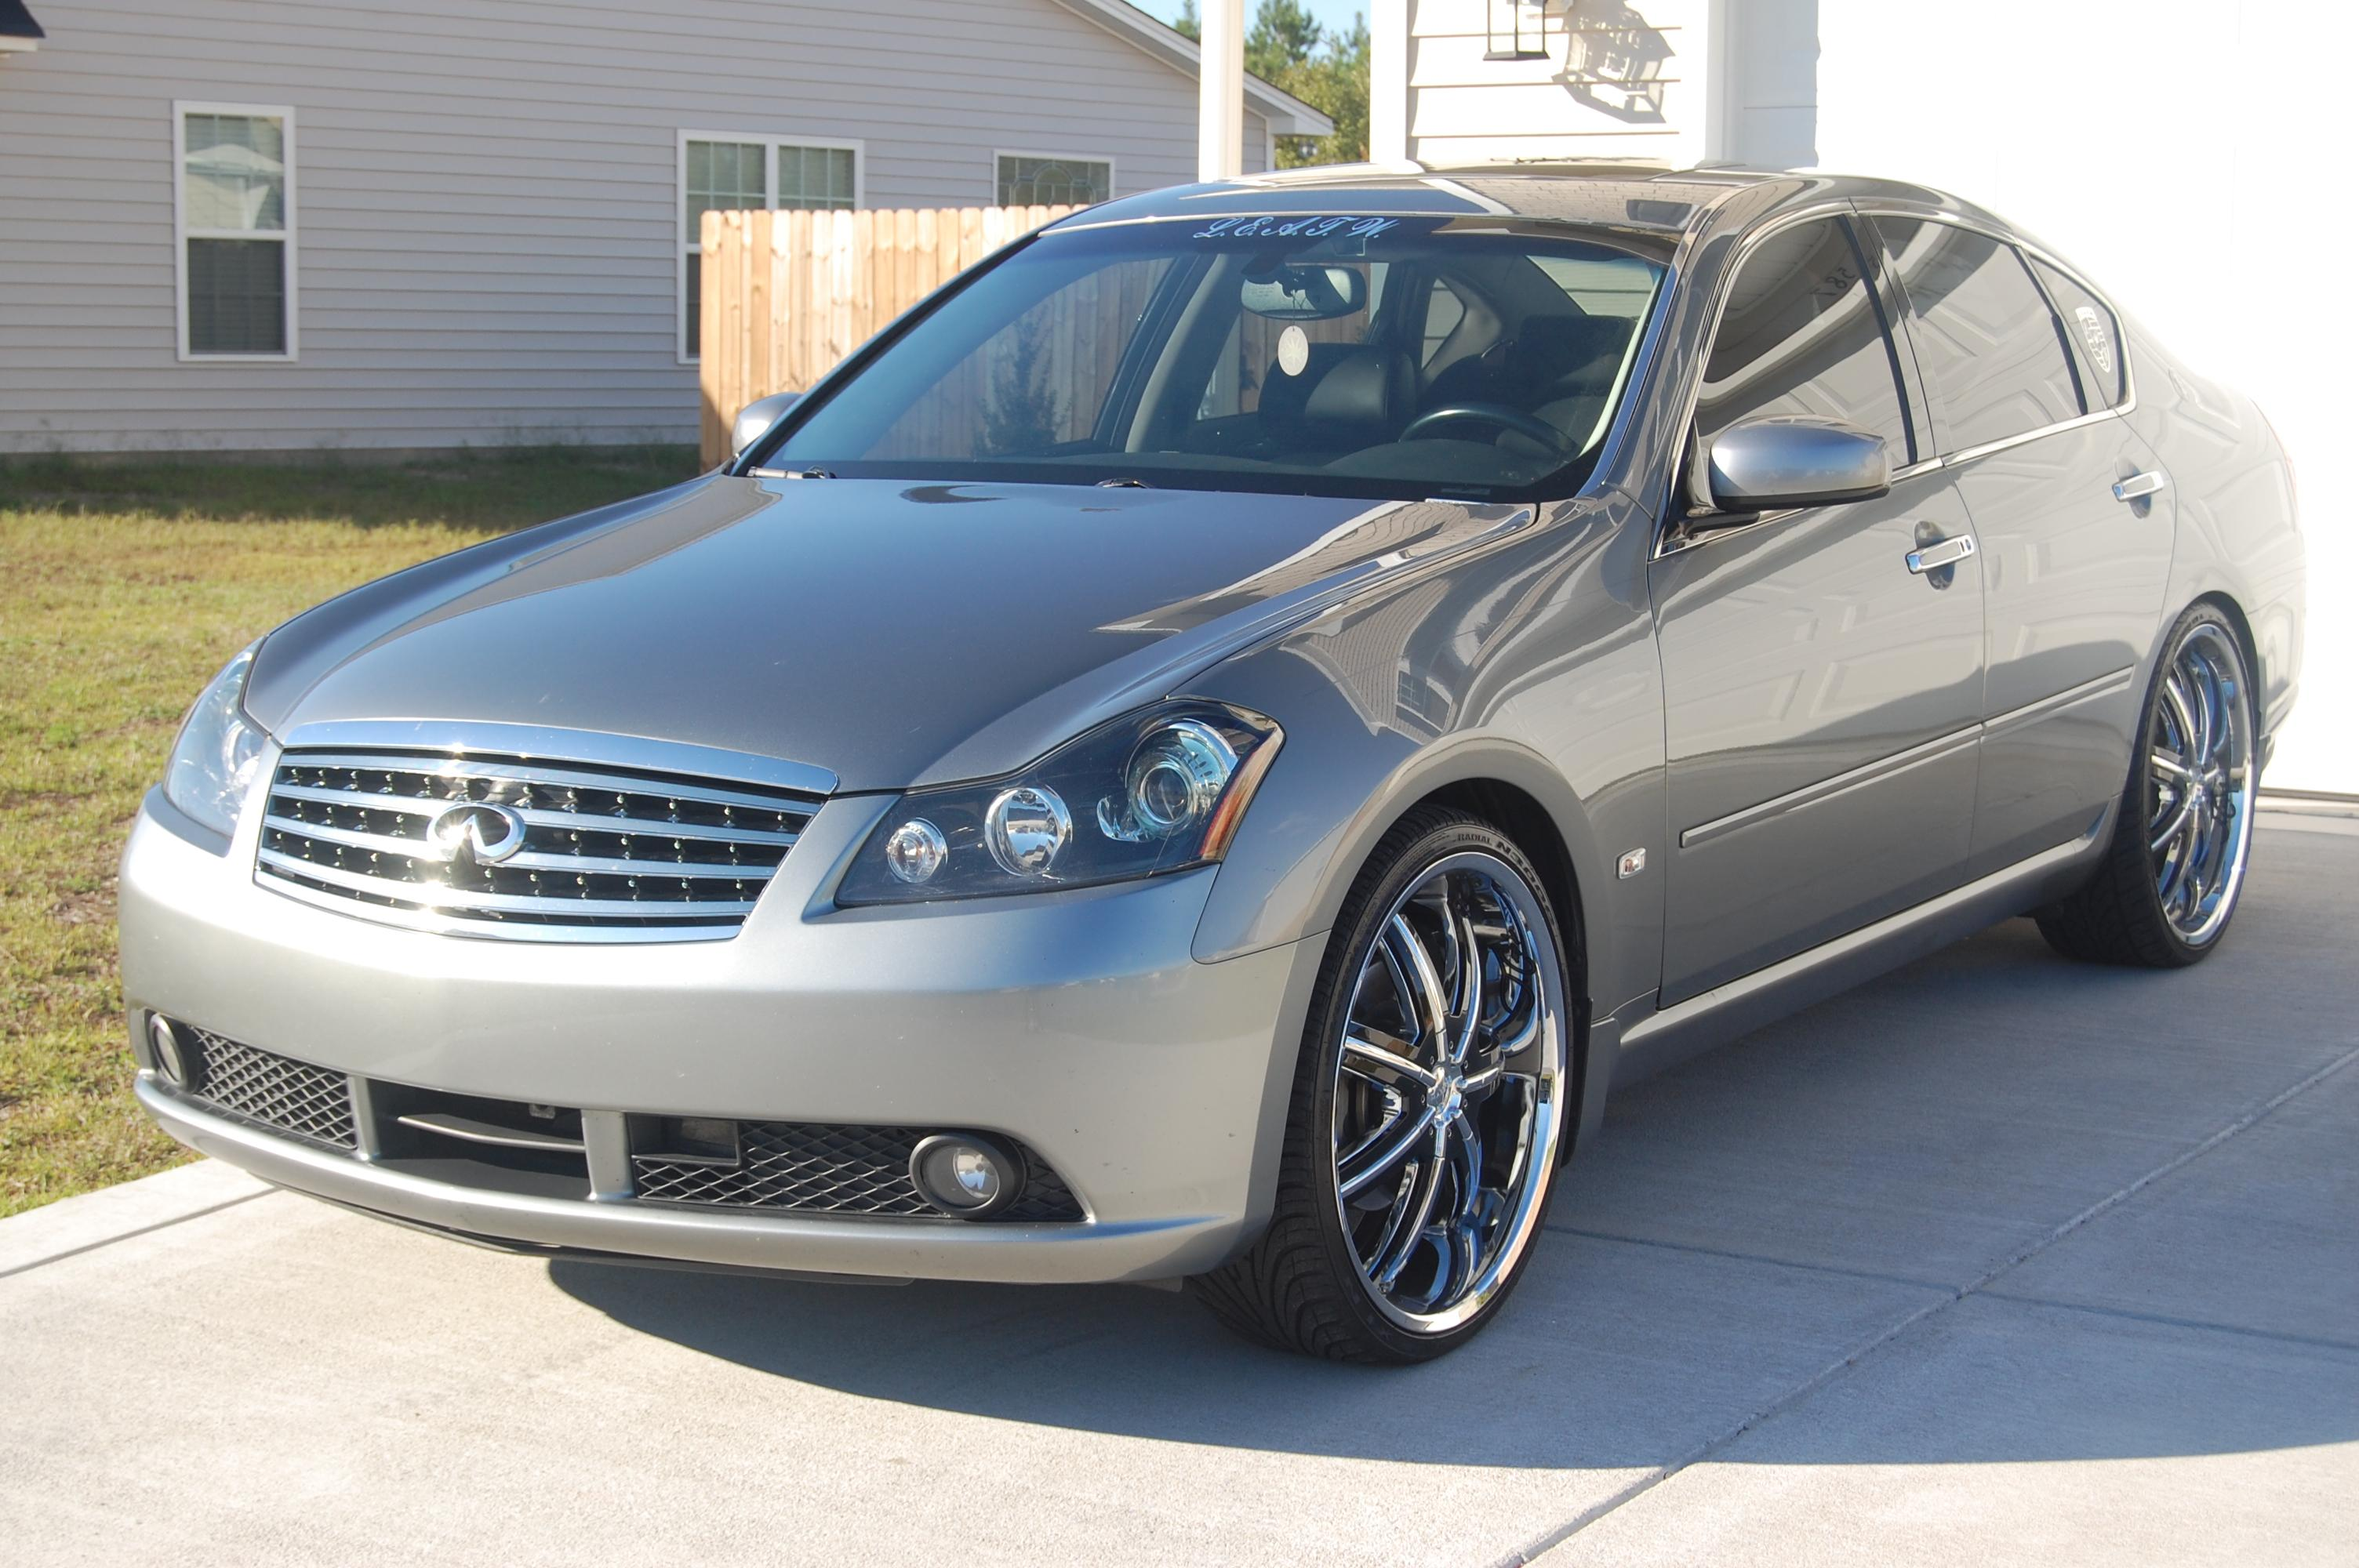 2007 infiniti m view all 2007 infiniti m at cardomain 1spayde 2007 infiniti m vanachro Choice Image